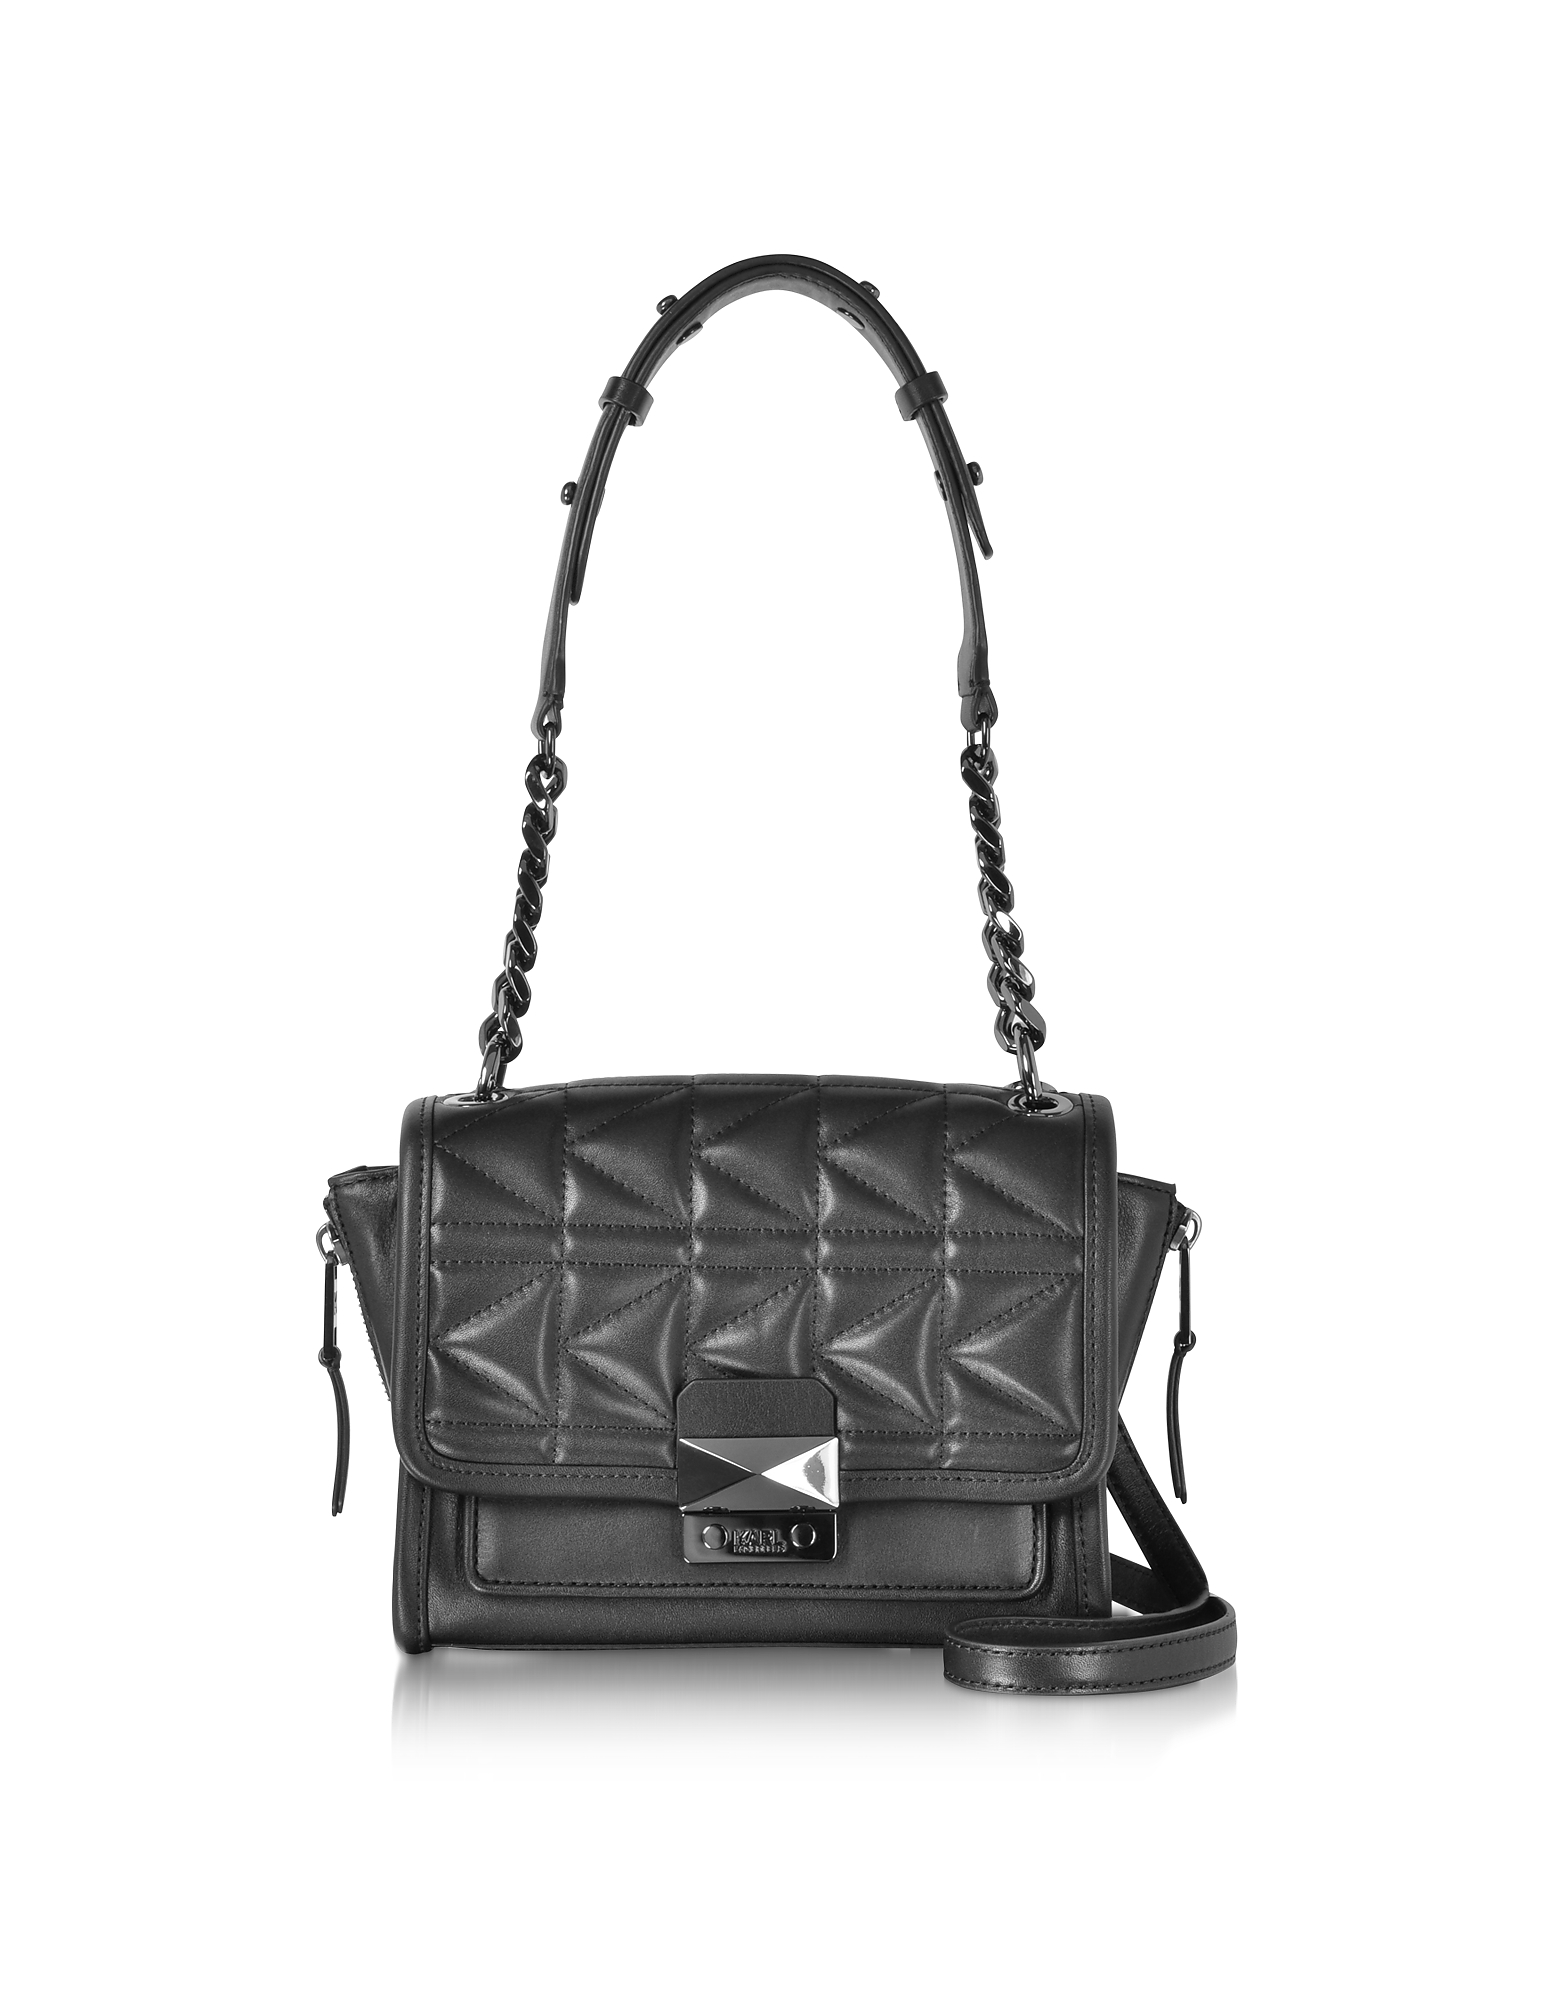 Karl Lagerfeld Handbags, K/Kuilted Black Leather Mini Handbag